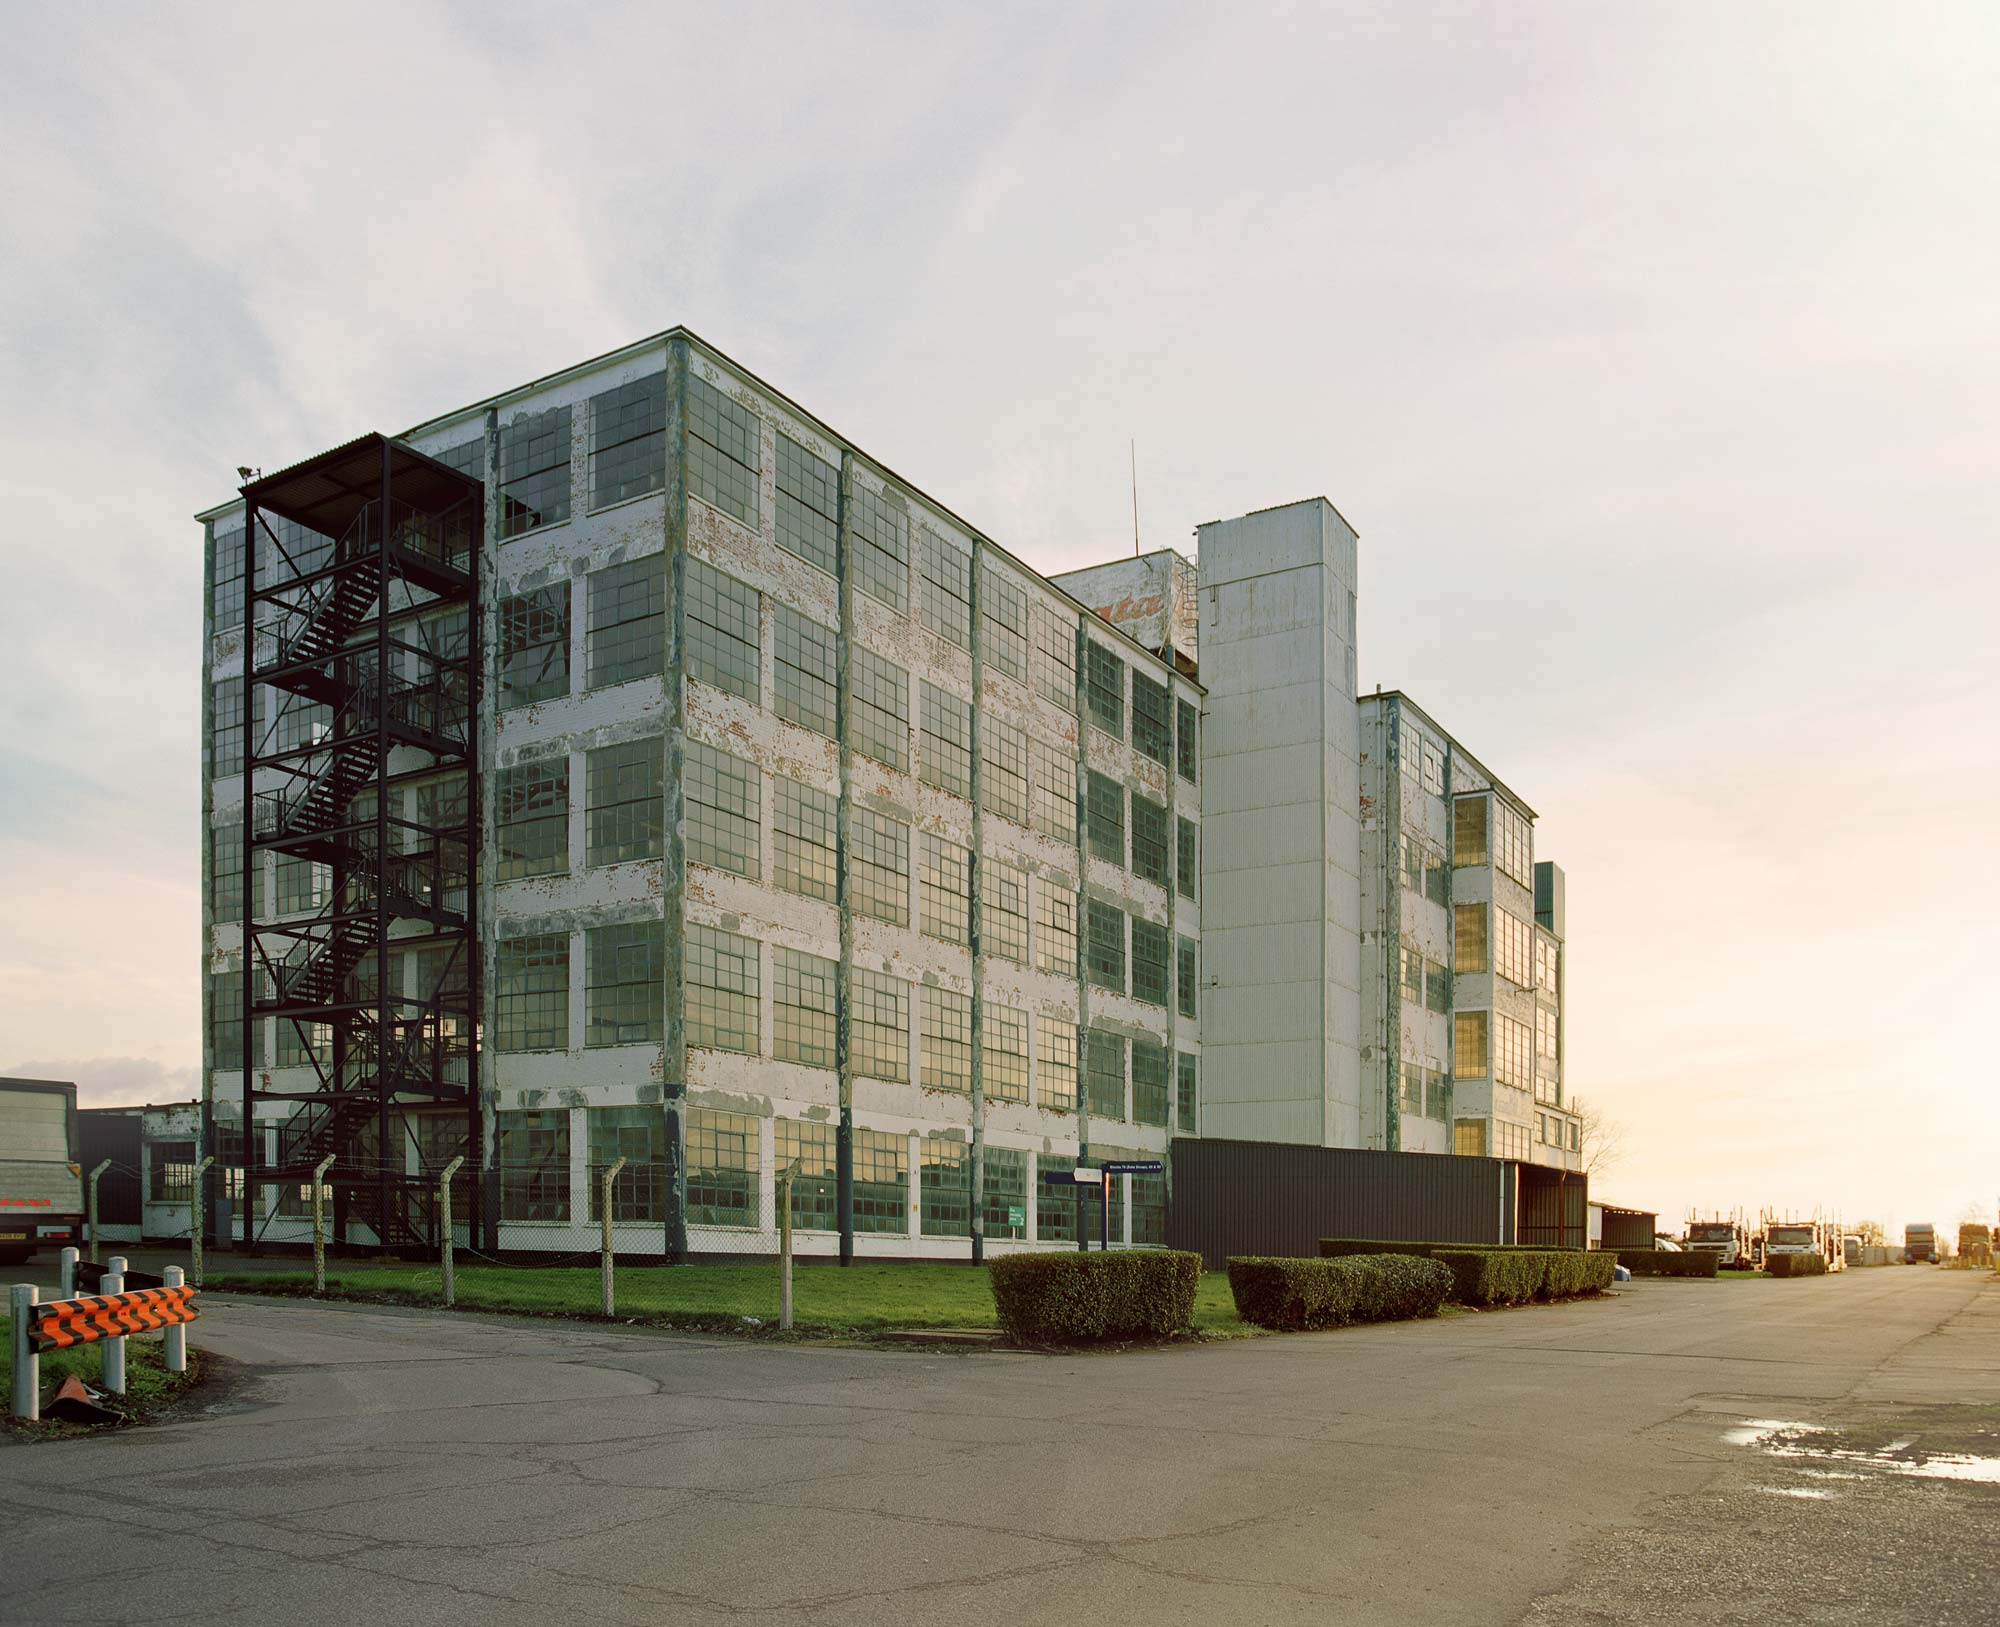 Bata Factory, Essex — Catherine Hyland